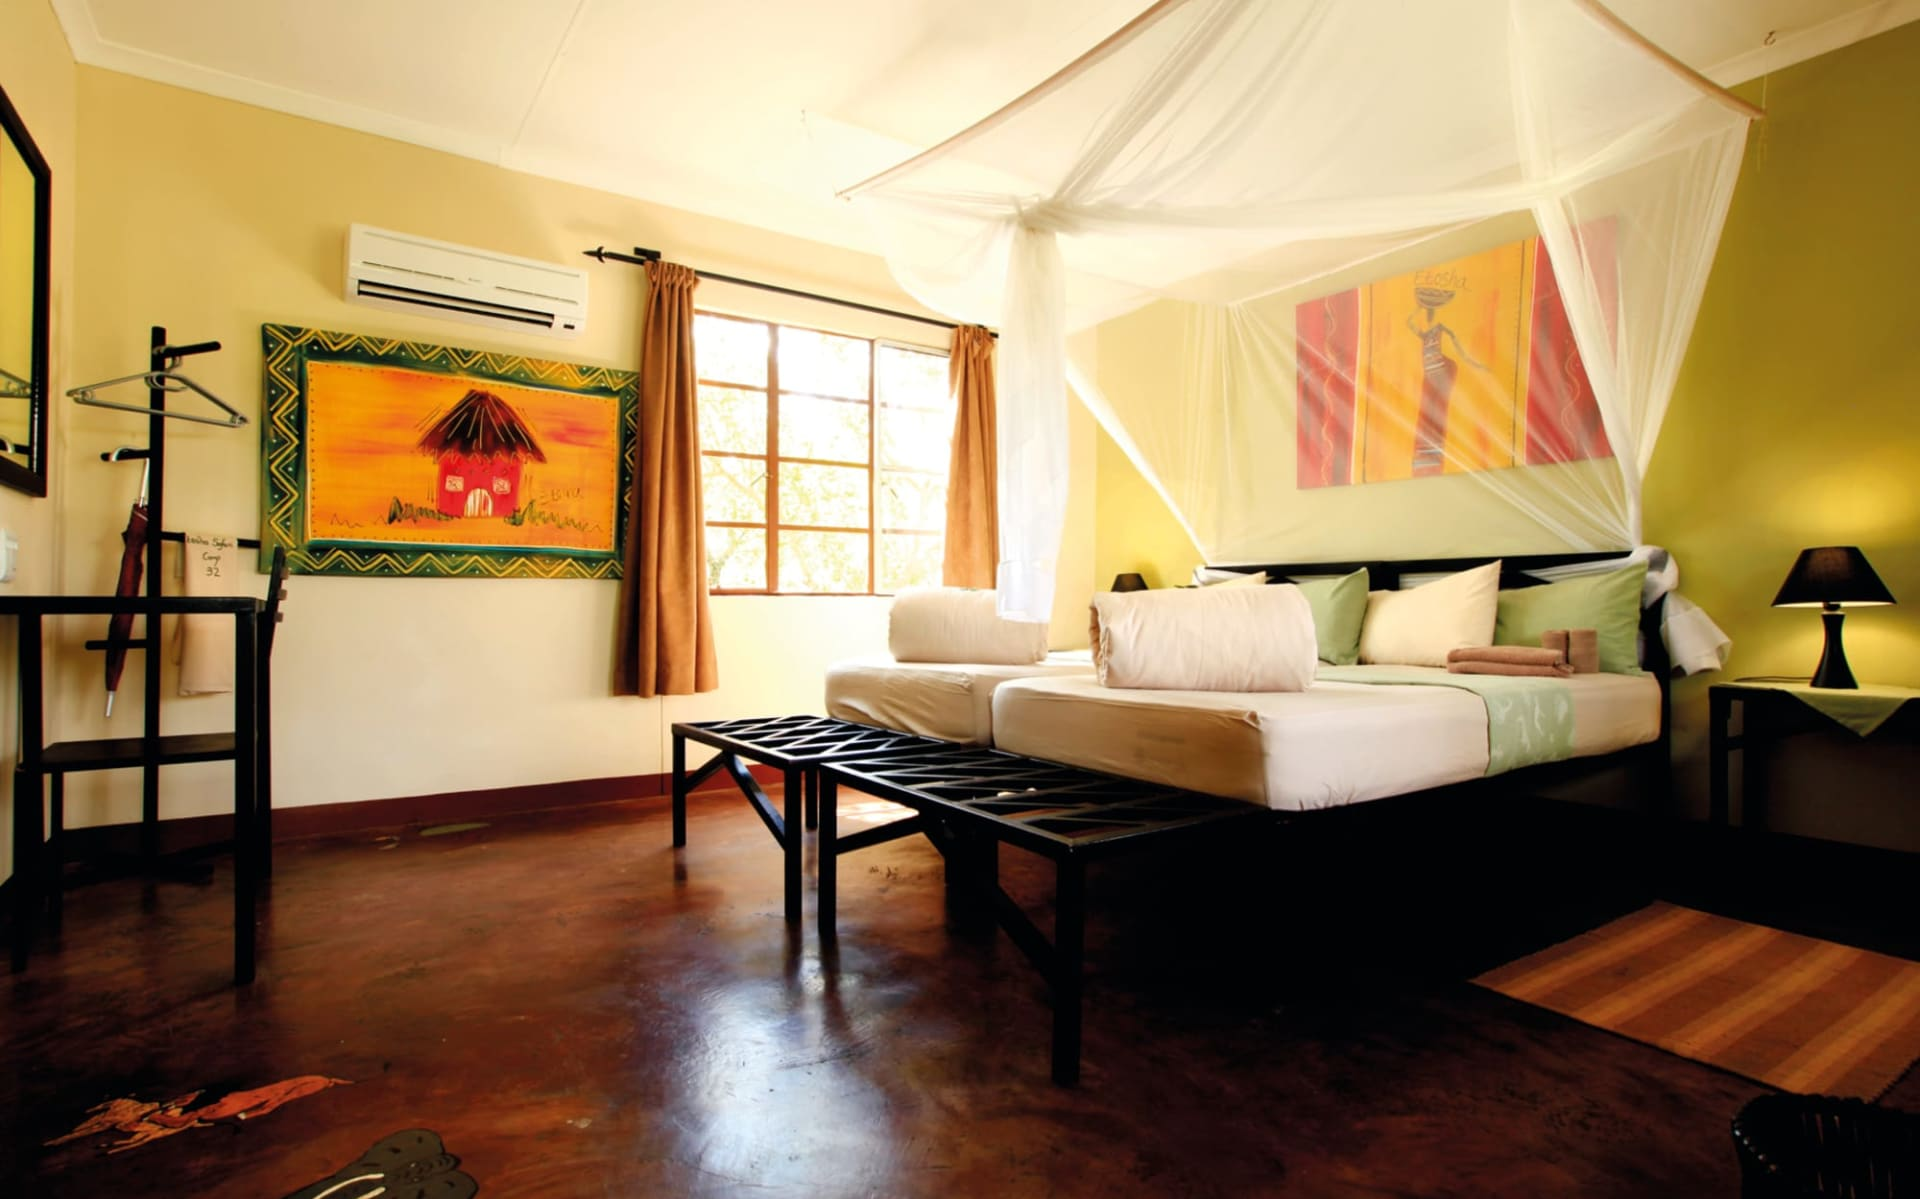 Etosha Safari Camp in Etosha Nationalpark:  Etosha Safari Camp - Schlafzimmer mit Bett